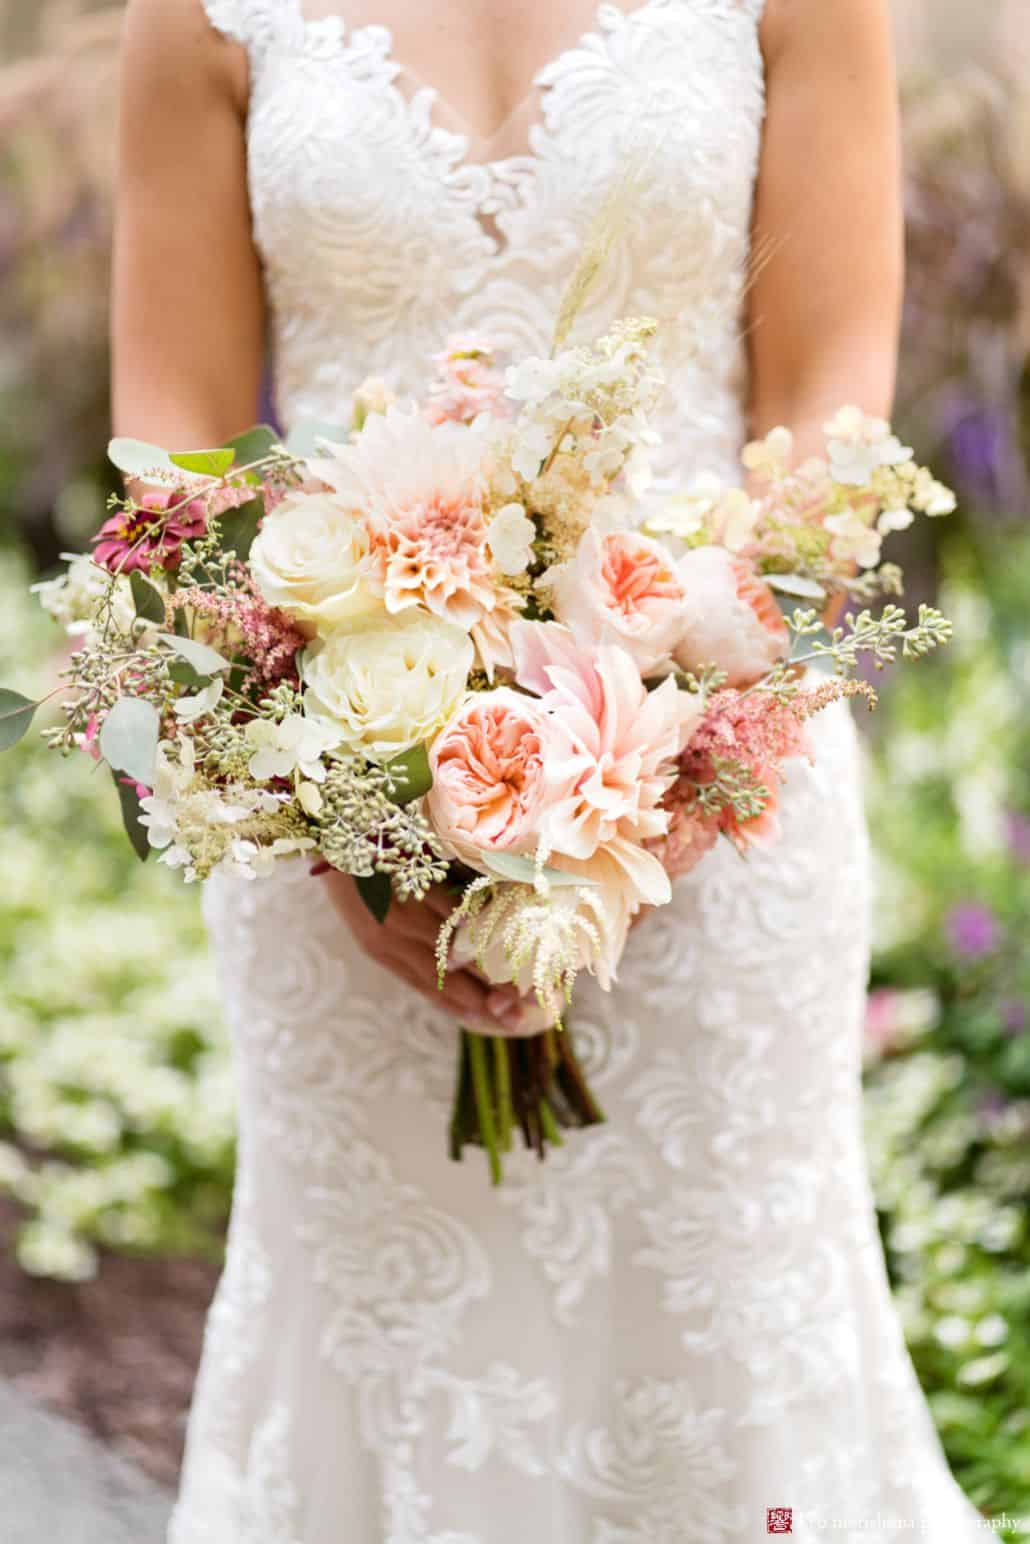 Bridal bouquet photo, white and pale pink/peach flowers with burgundy accents, roses, peonies, astilbe, eucalyptus, hydrangea, natural wedding bouquet, Fox Hill Farm Experience florist, poconos outdoor wedding photographer.